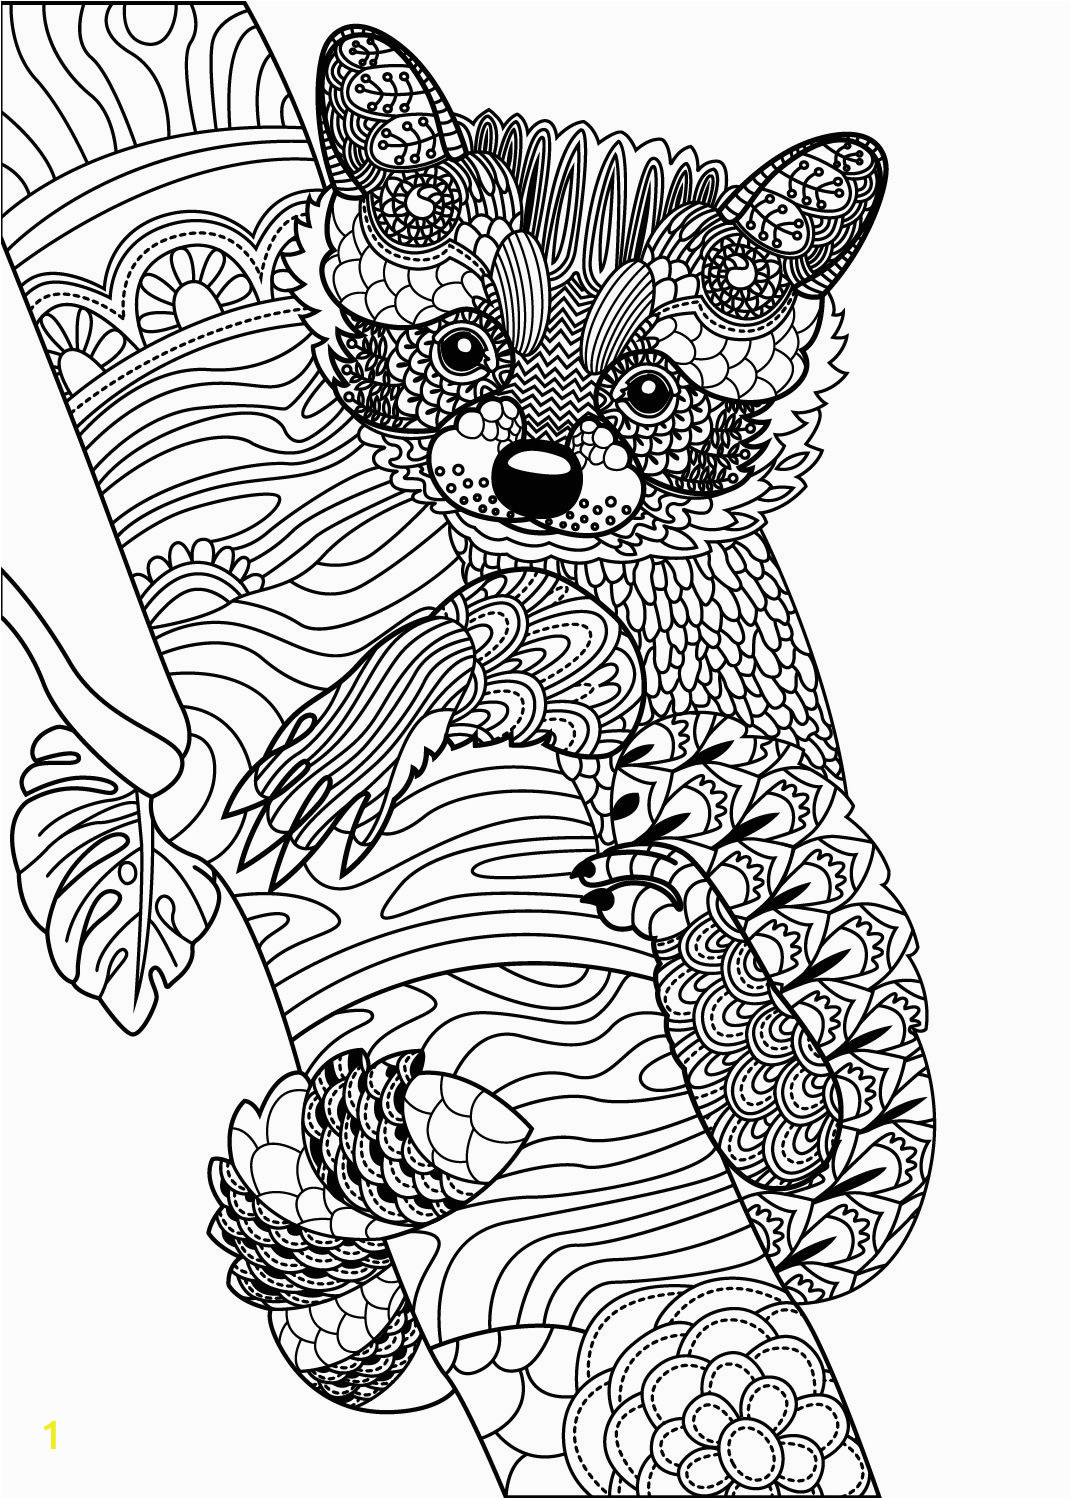 Color by Number Cat Coloring Pages Wild Animals to Color